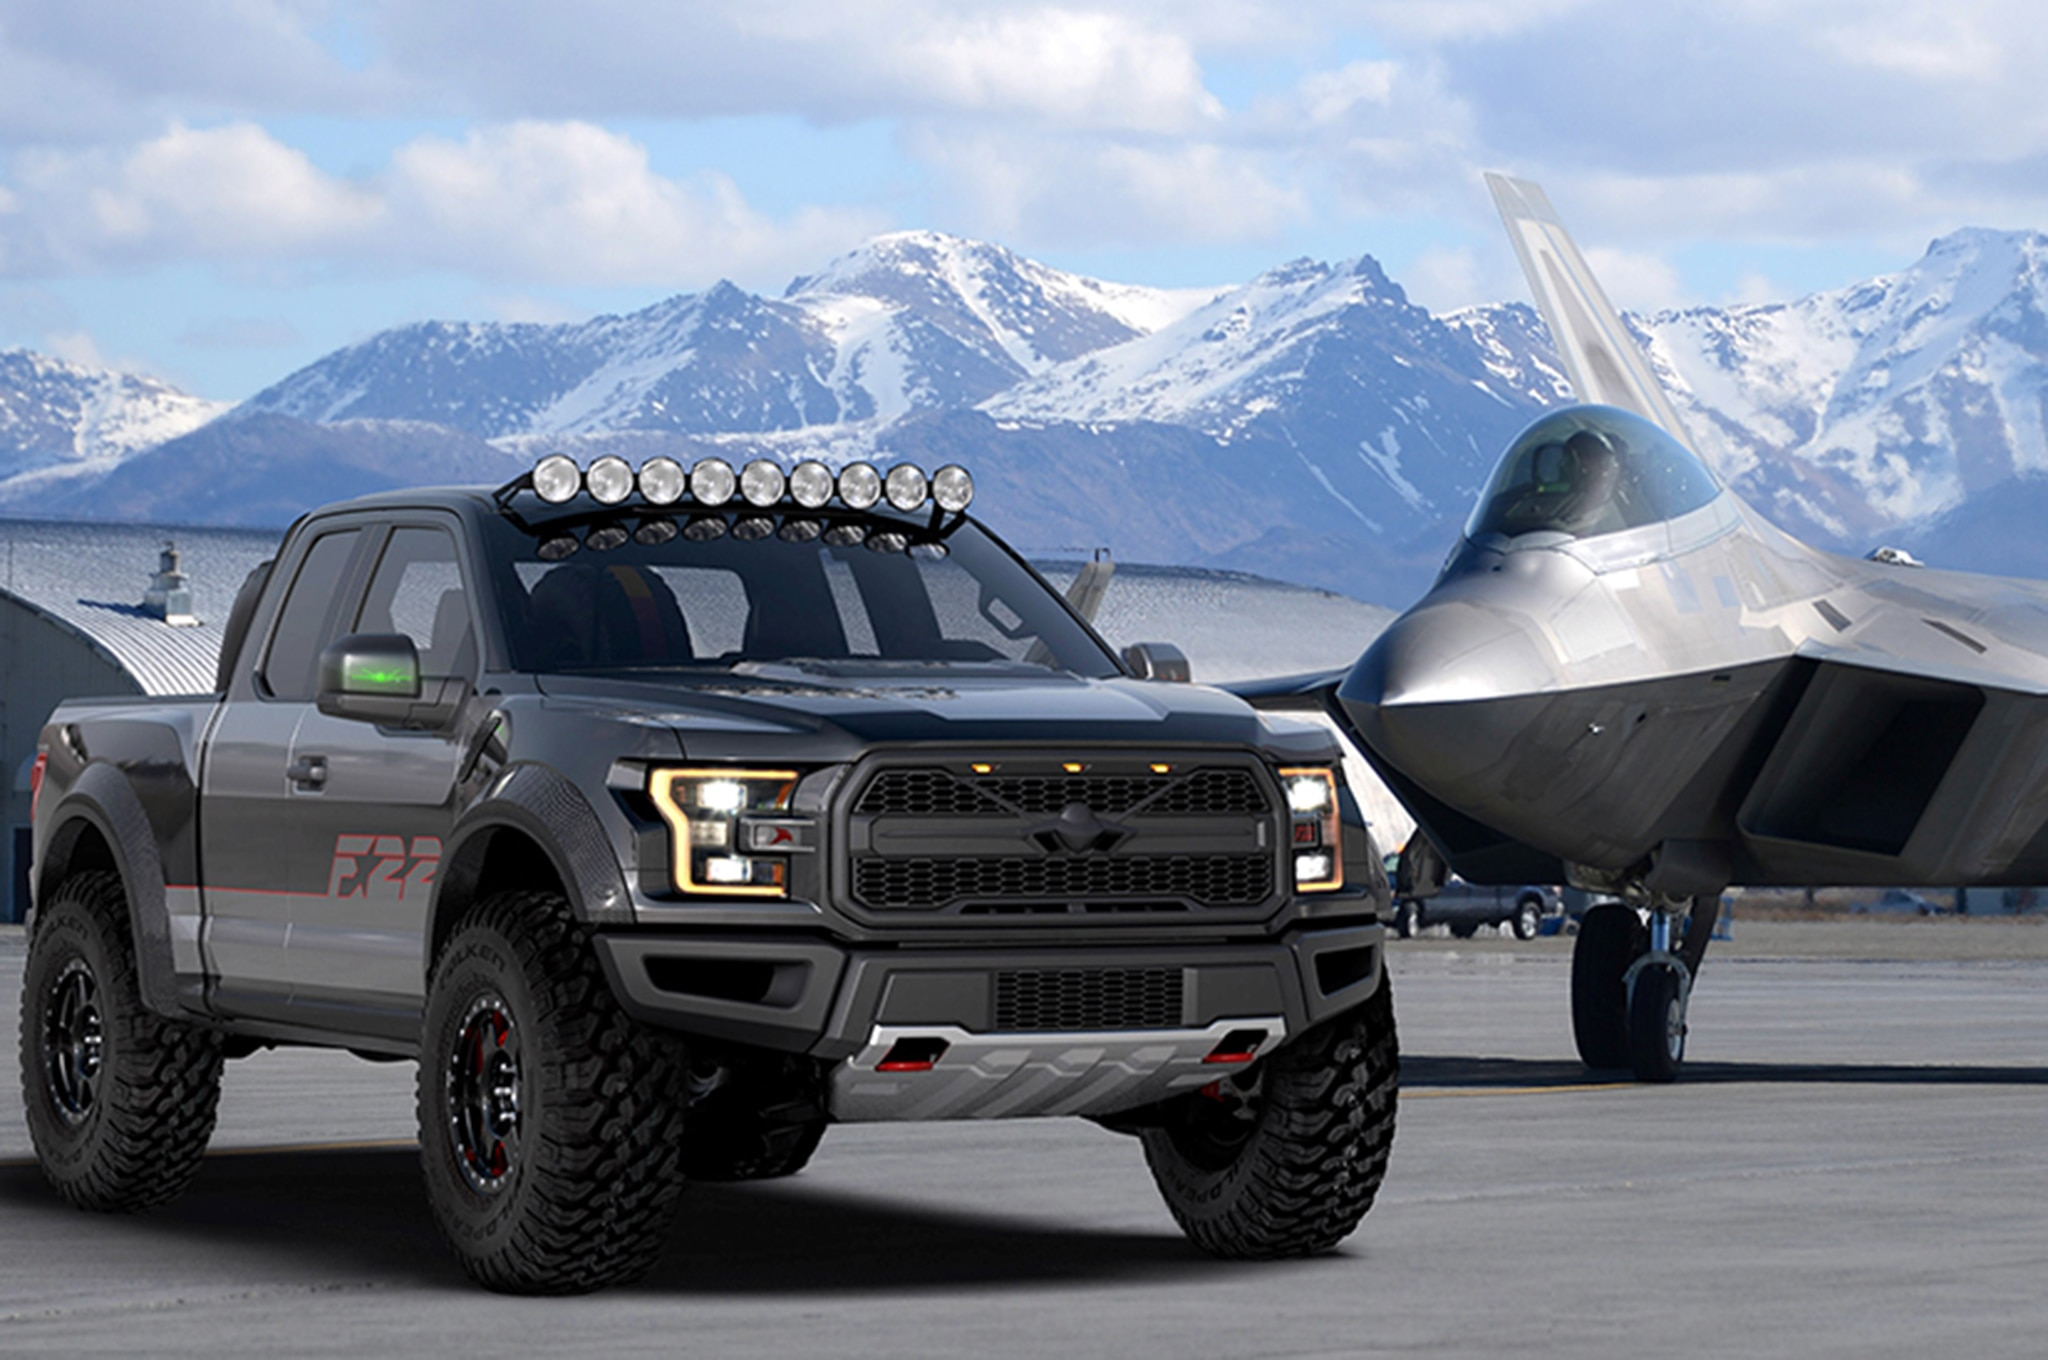 2017 Ford F 22 Raptor With F 22 Jet Lead